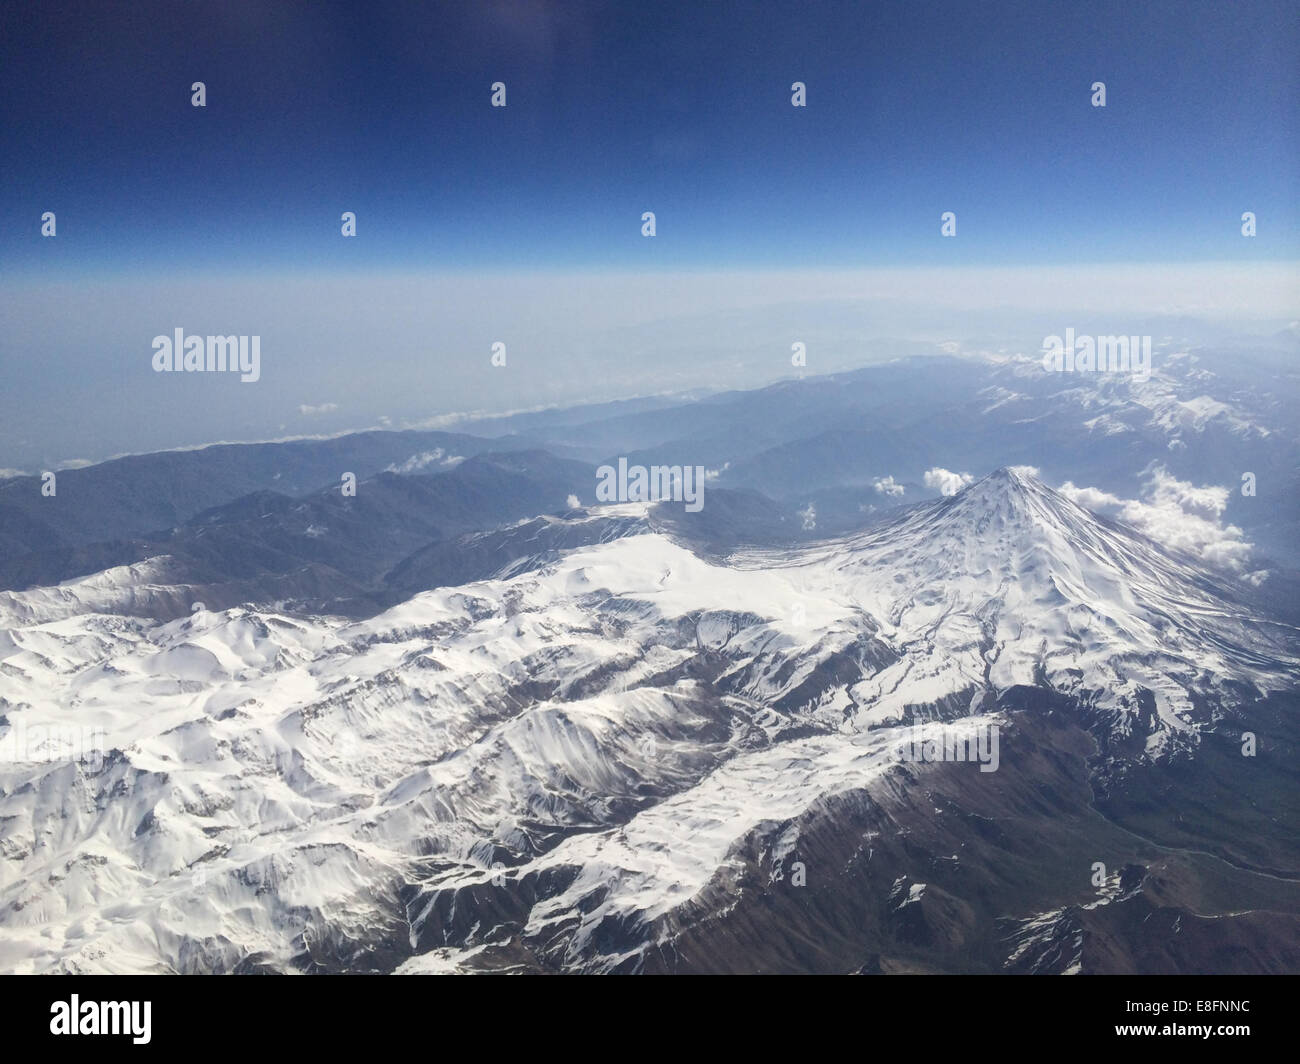 Iran, Aerial view of Mt Damavand in Alborz mountains range - Stock Image